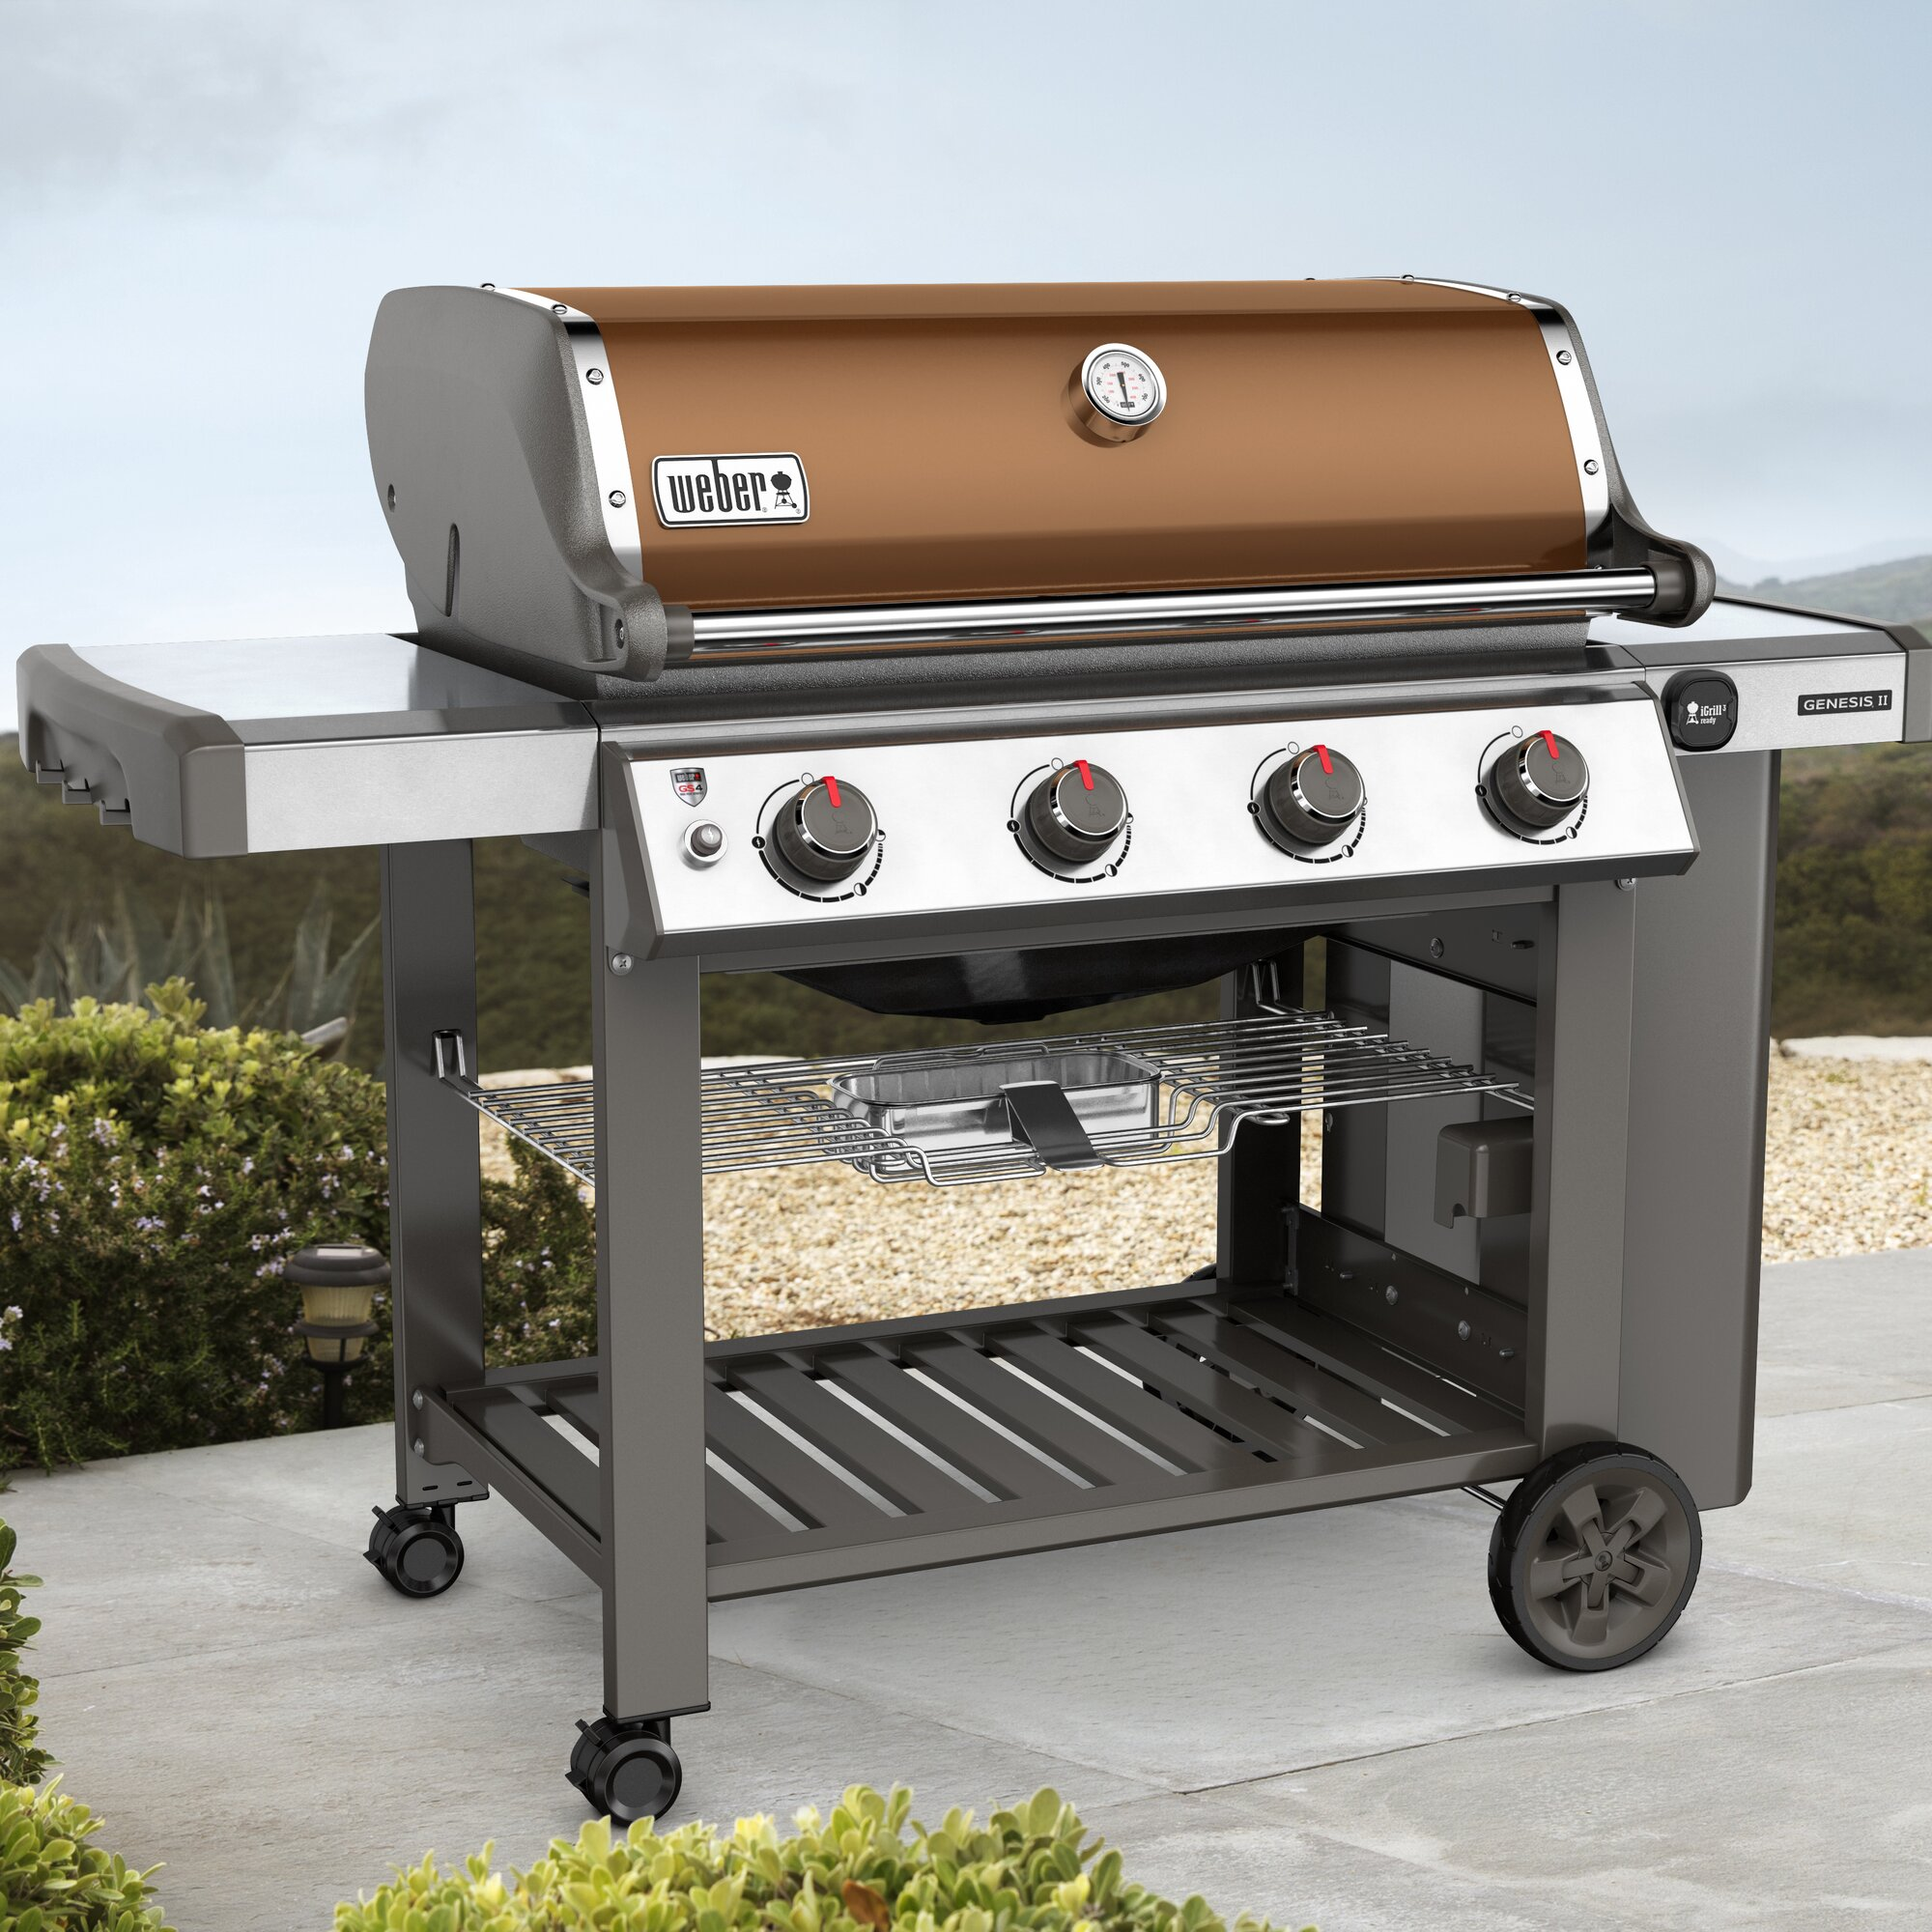 weber genesis ii e 410 4 burner propane gas grill with side shelves reviews wayfair. Black Bedroom Furniture Sets. Home Design Ideas